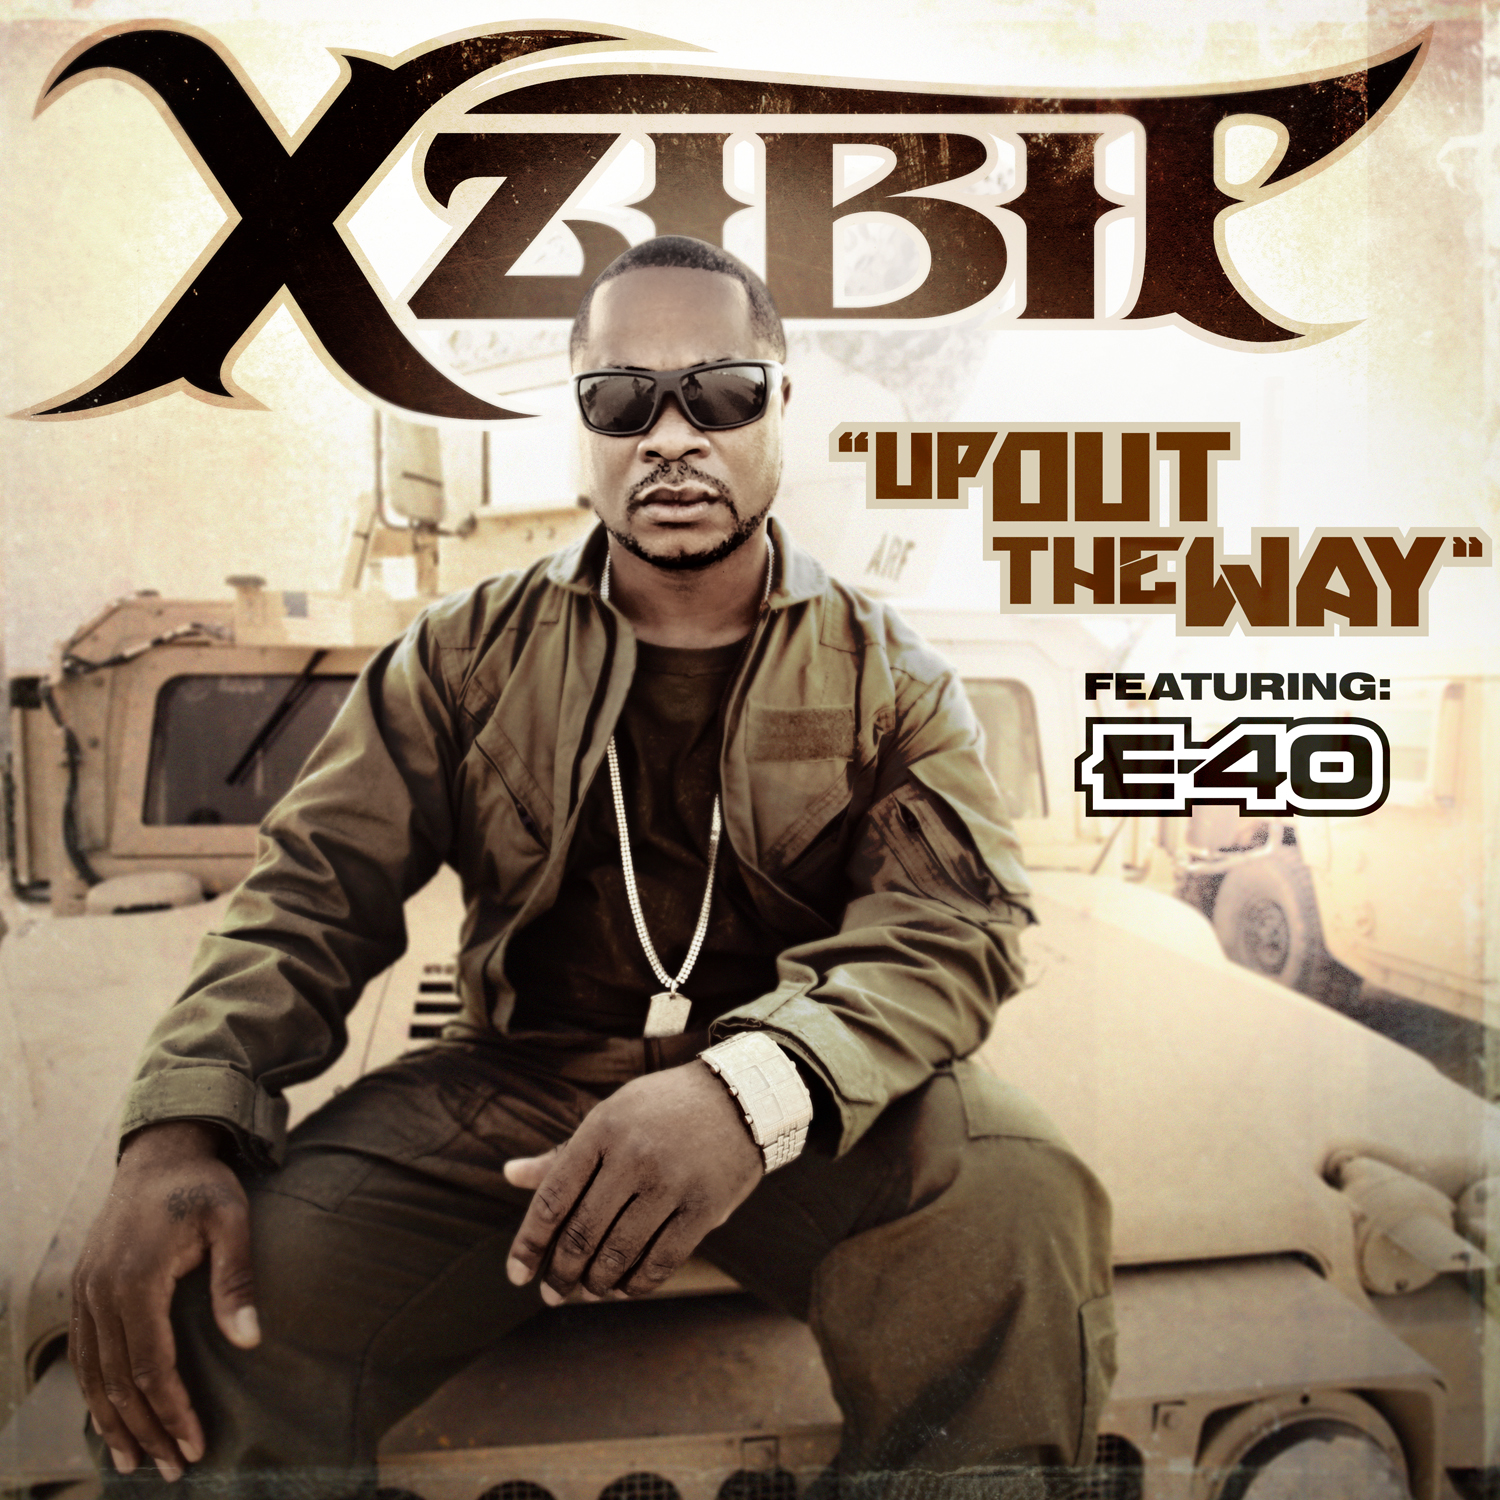 Xzibit – Up Out The Way (con E-40)